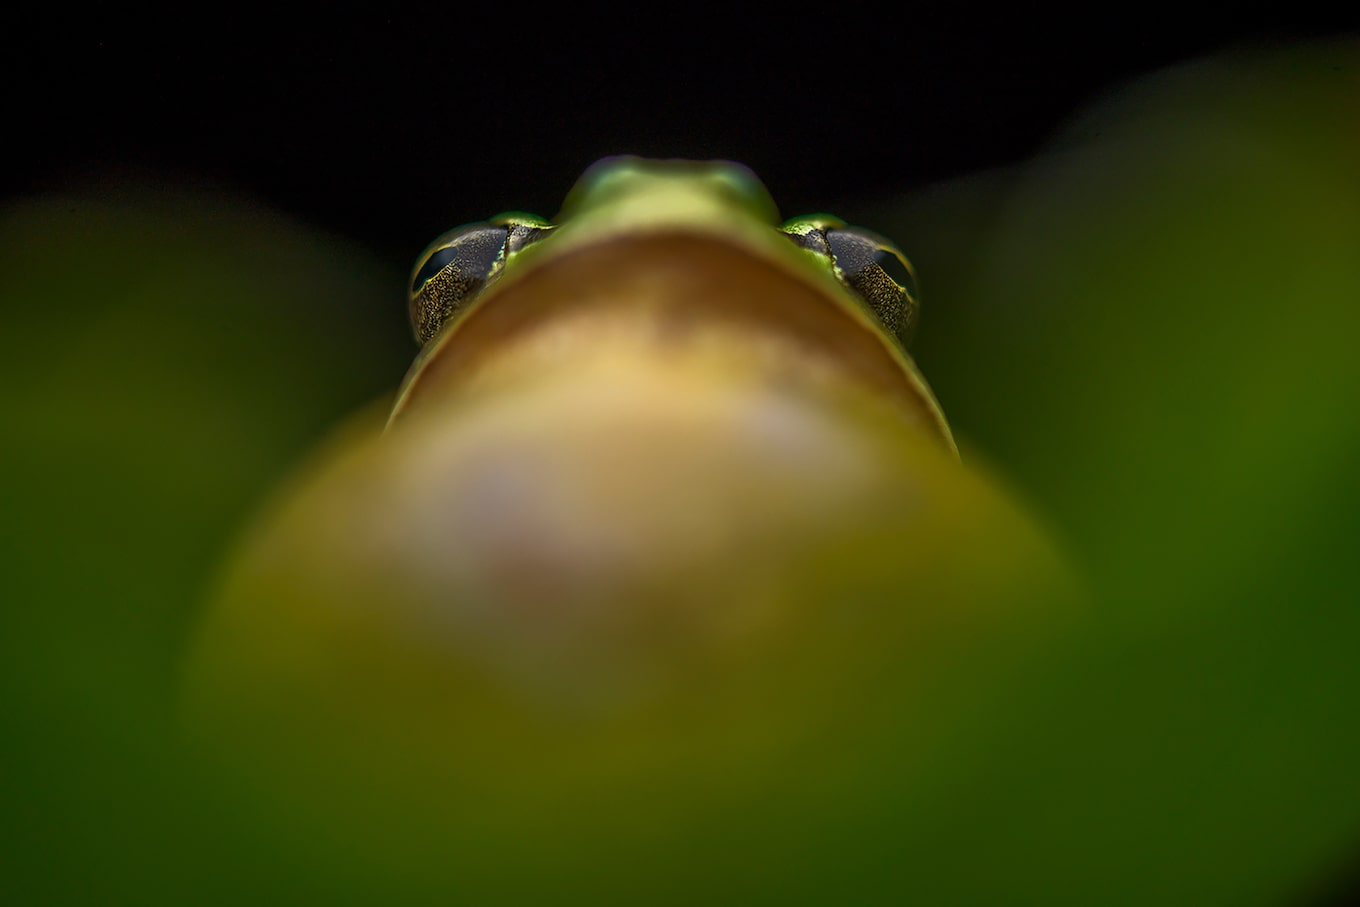 javier-aznar-sony-alpha-7RIII-tres-gros-plan-d-une-grenouille